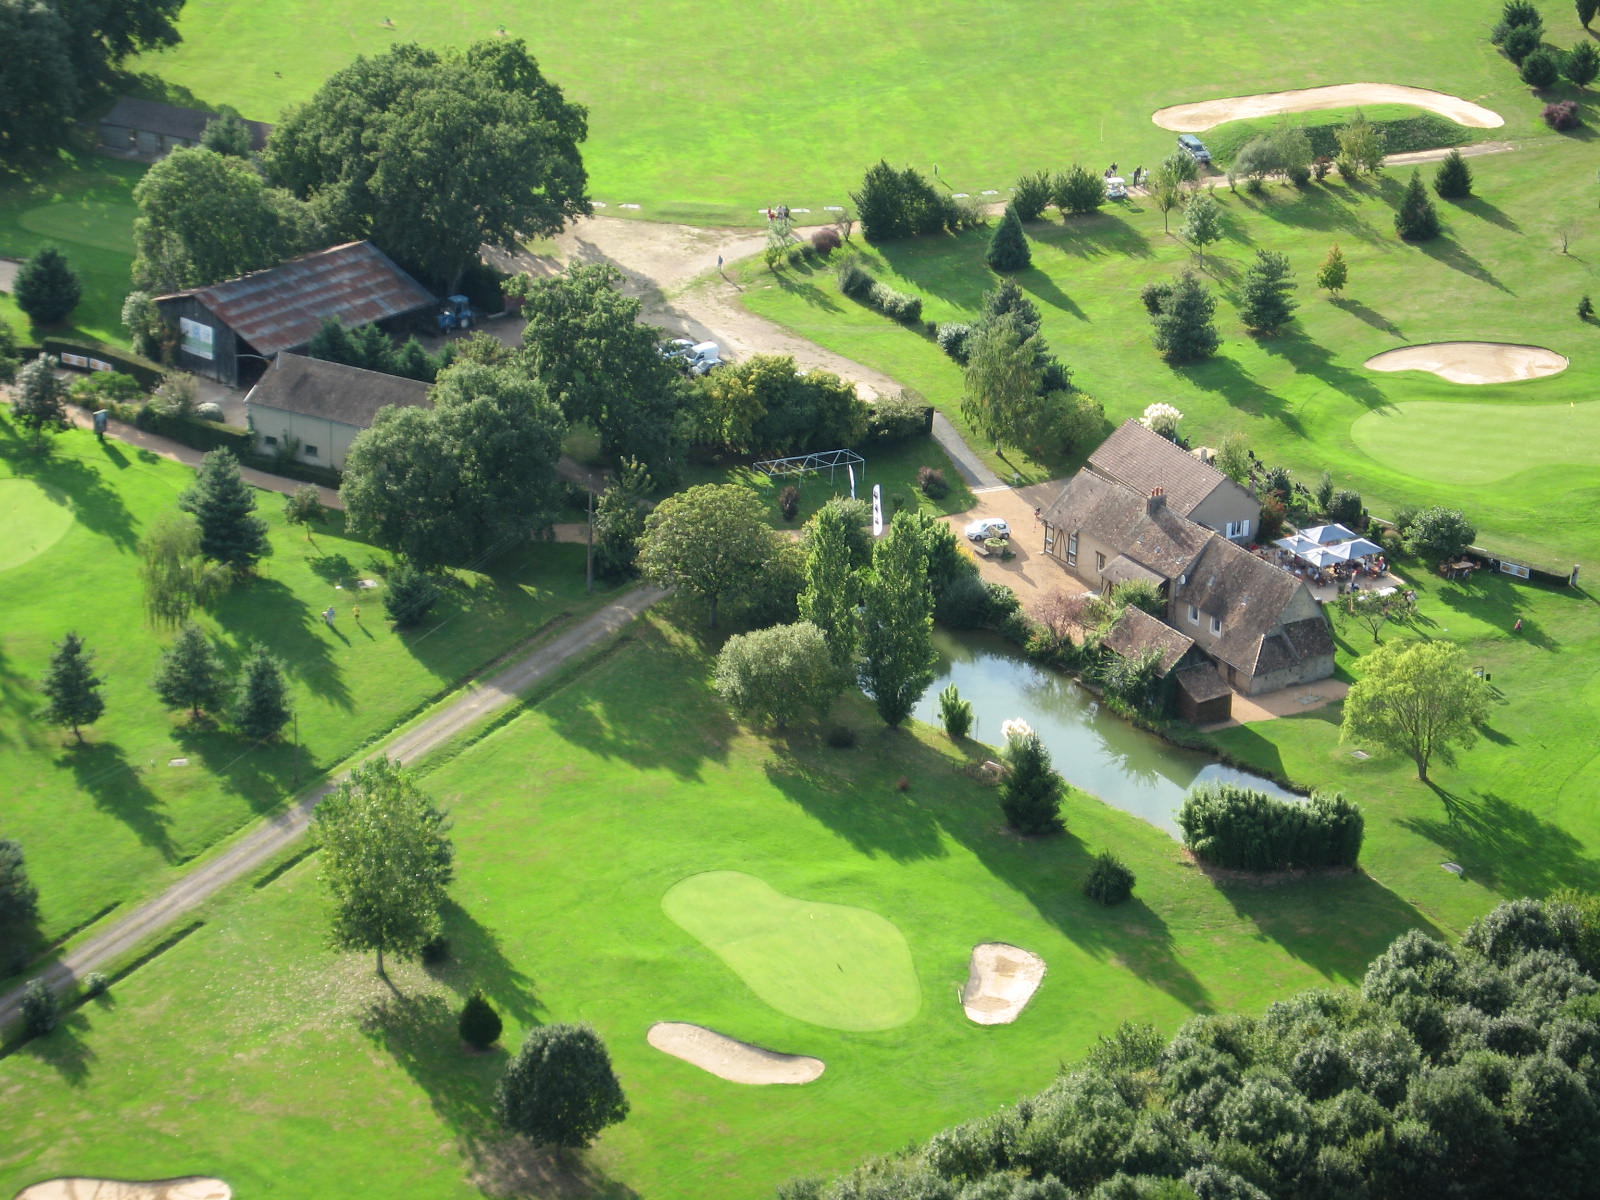 Overview of golf course named Mansgolfier Golf Club